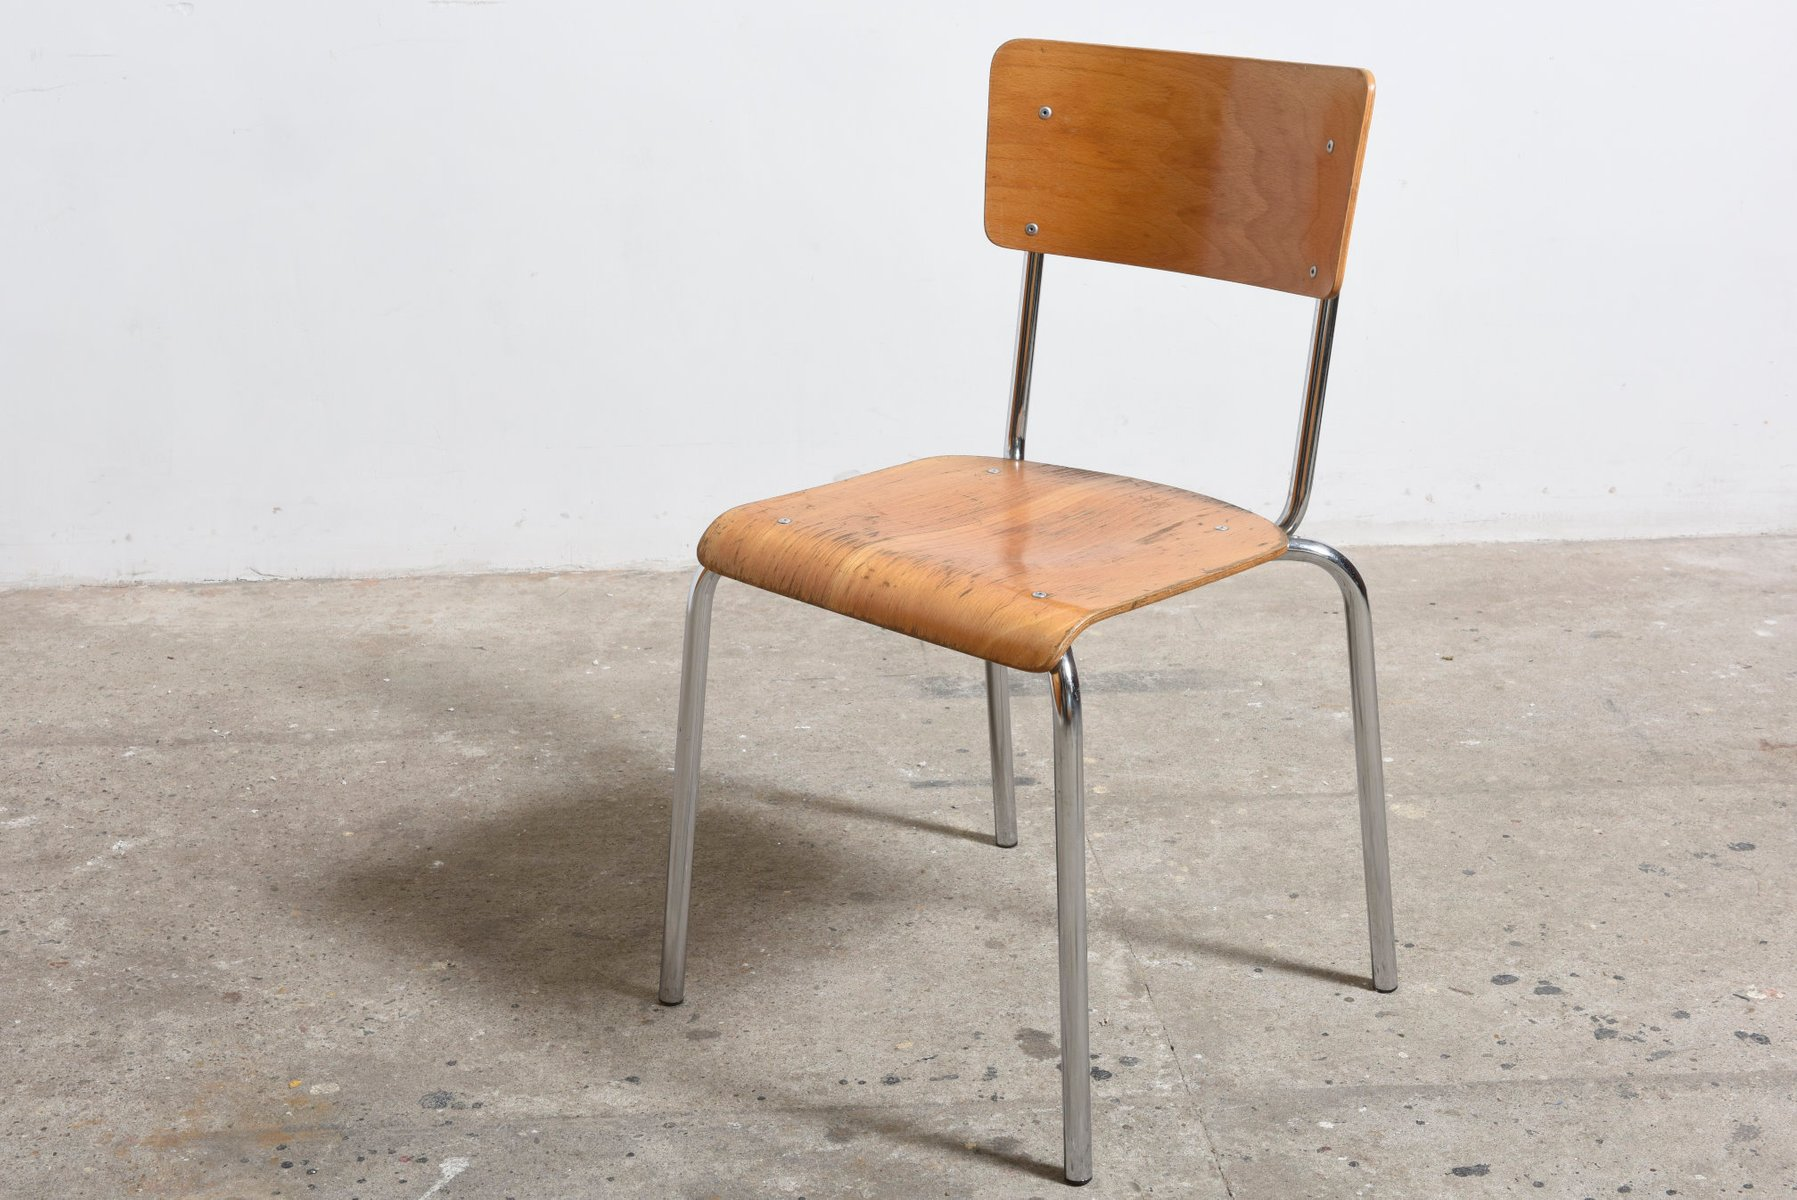 Industrial Chrome Beechwood Stacking Chairs from Tubax Set of 6